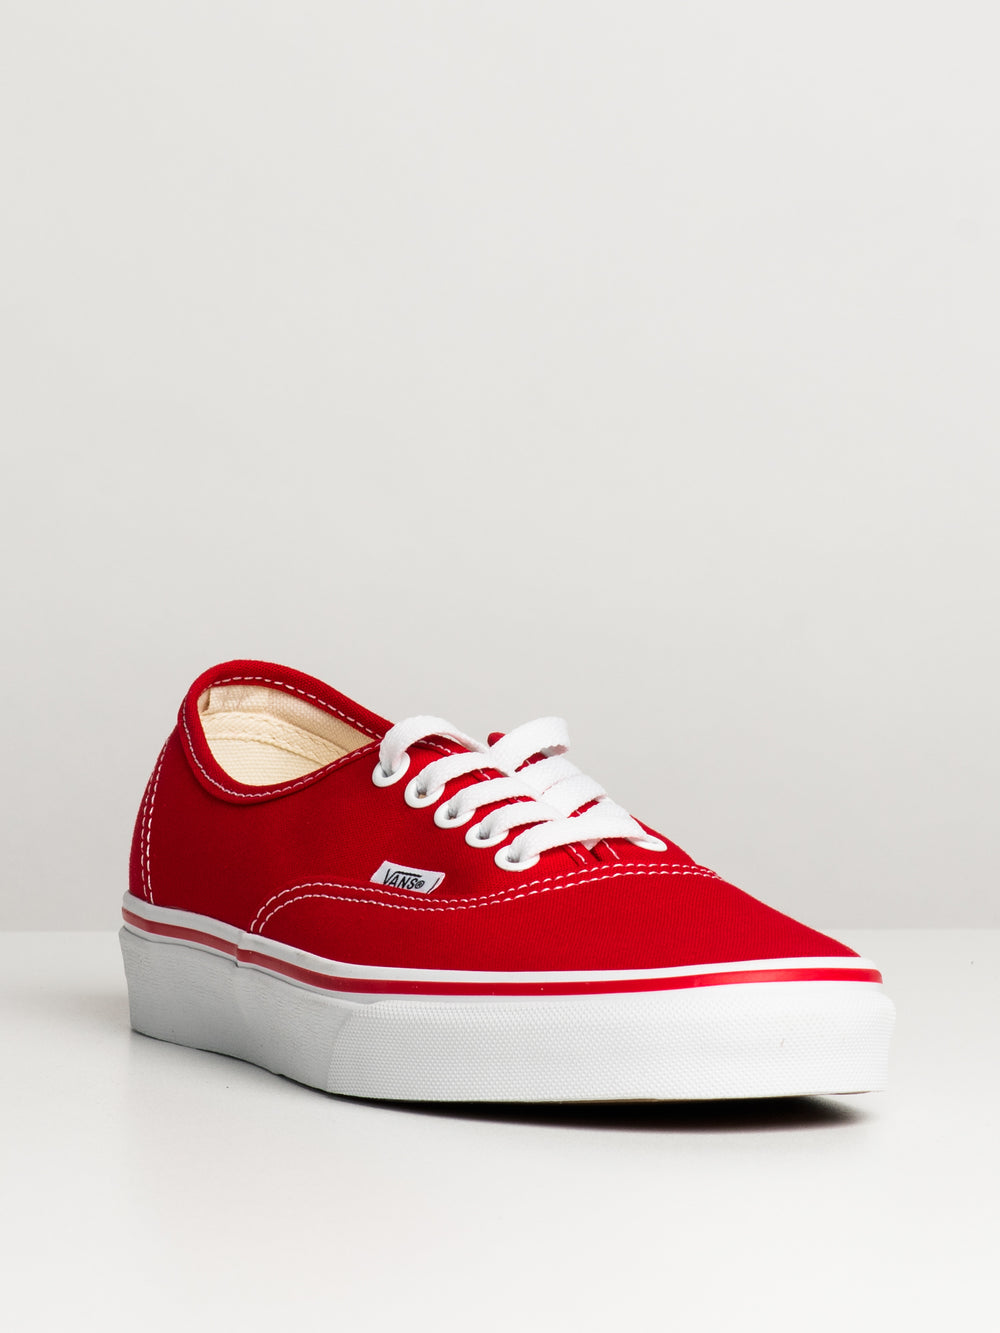 MENS AUTHENTIC RED CANVAS SHOES SNEAKER